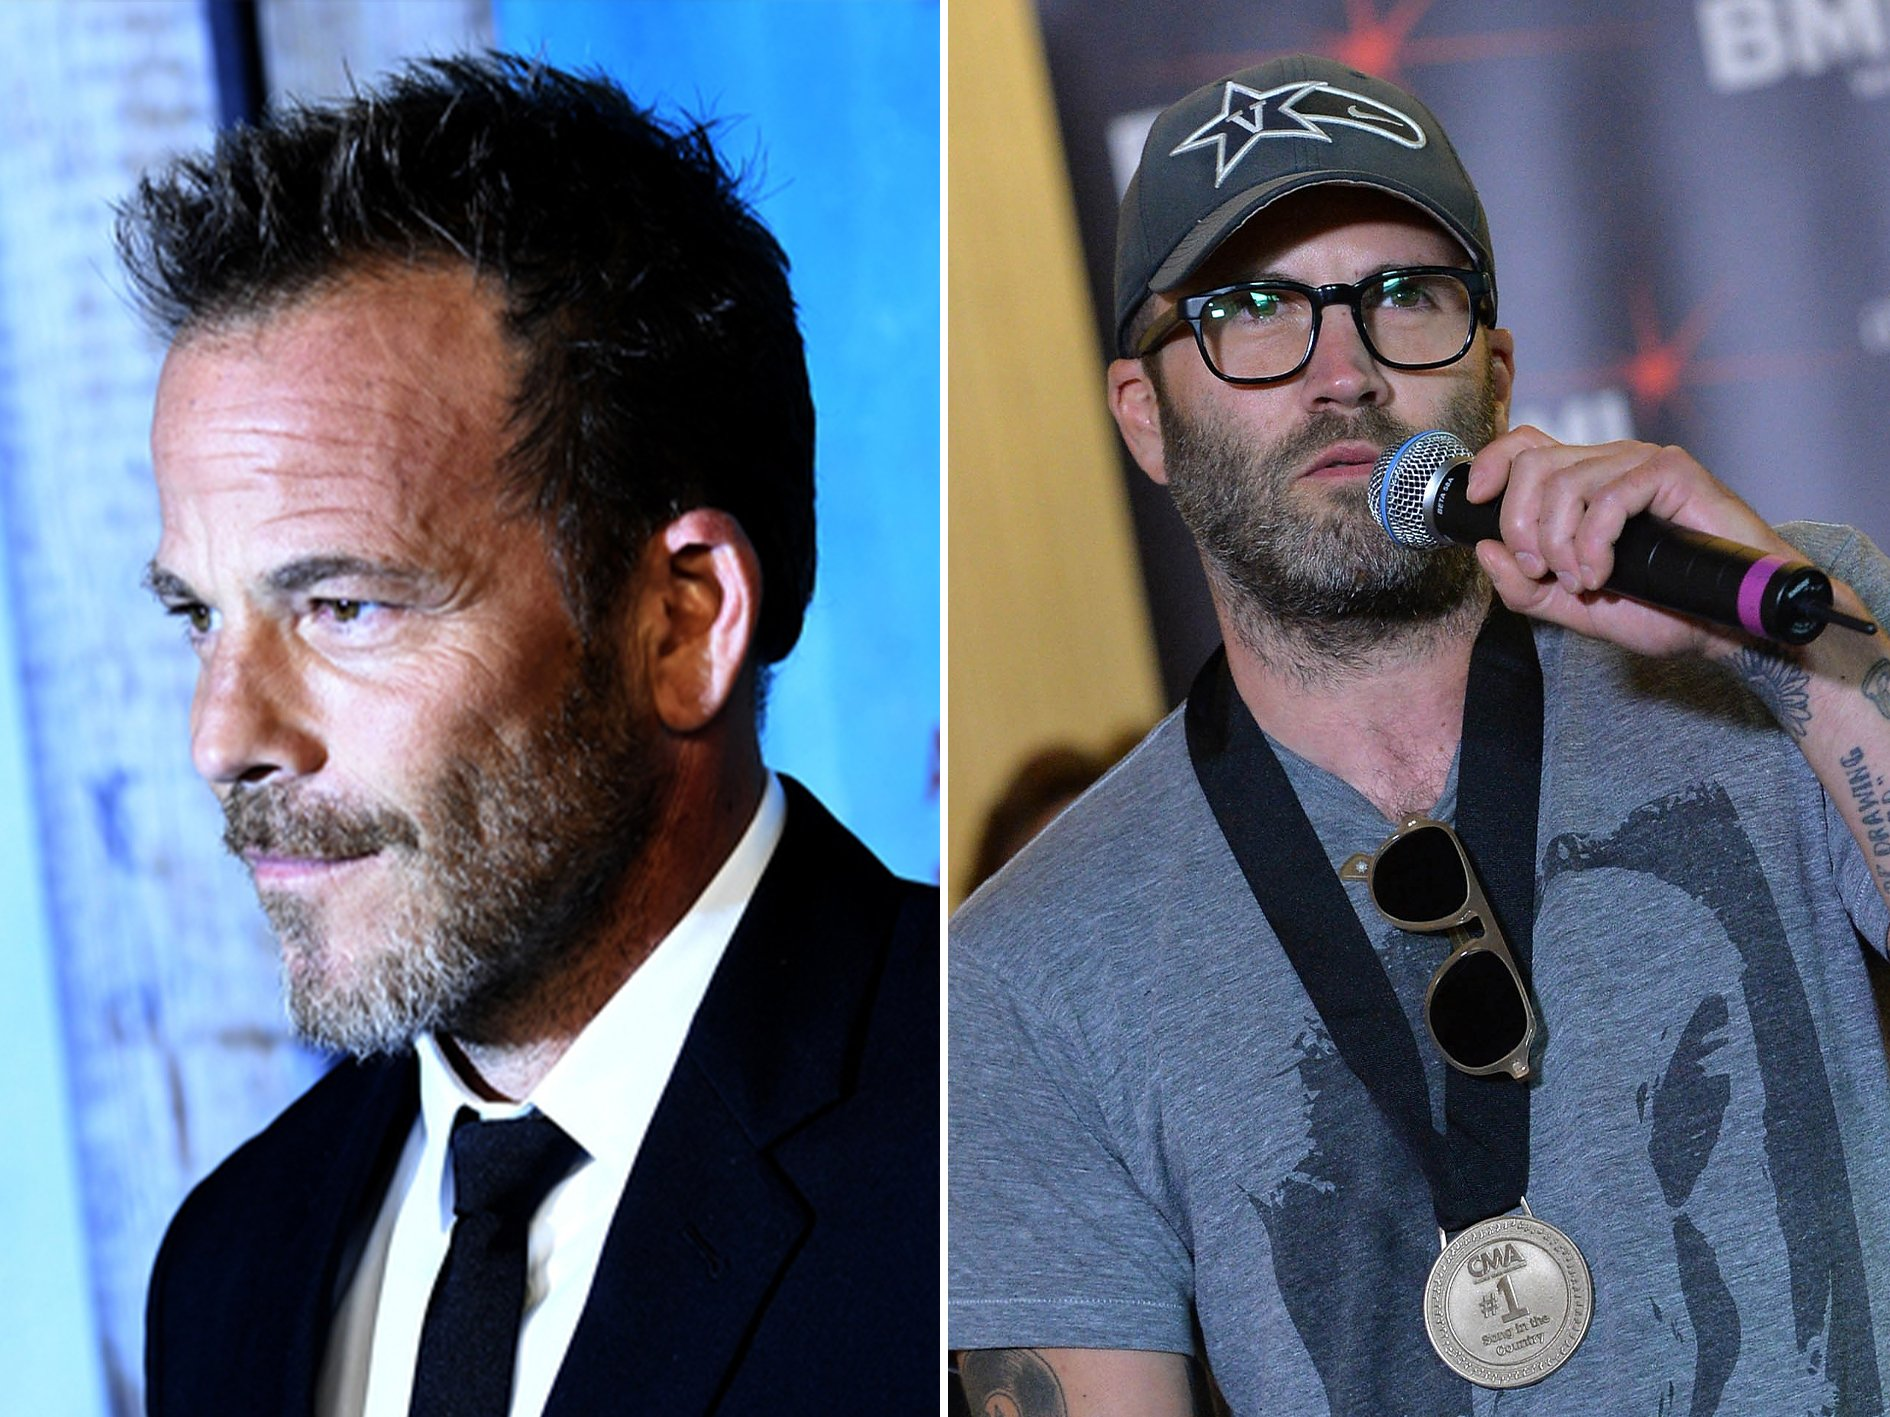 Stephen Dorff Andrew Dorff 20 Things You Might Not Have Known About Stephen Dorff